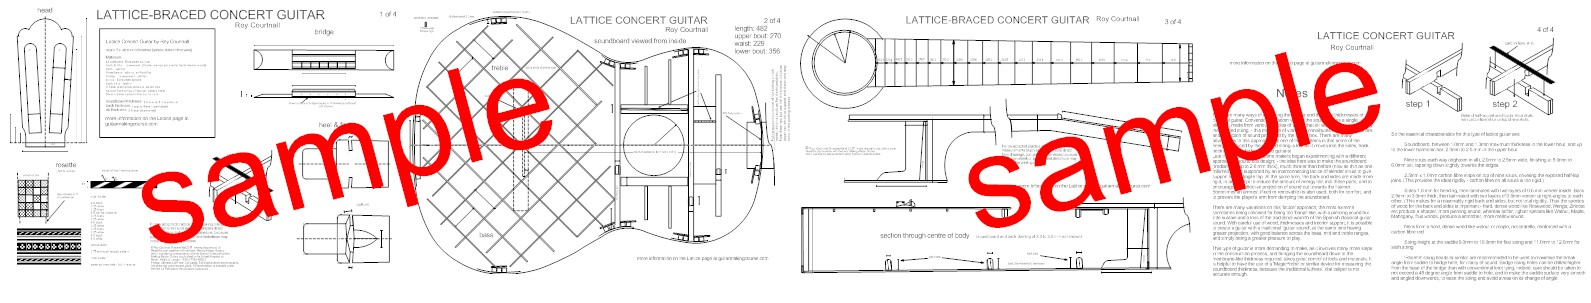 4 sheets of A2 paper 420 mm x 594 mm (16.5 inches x 23.4 inches) with full construction details